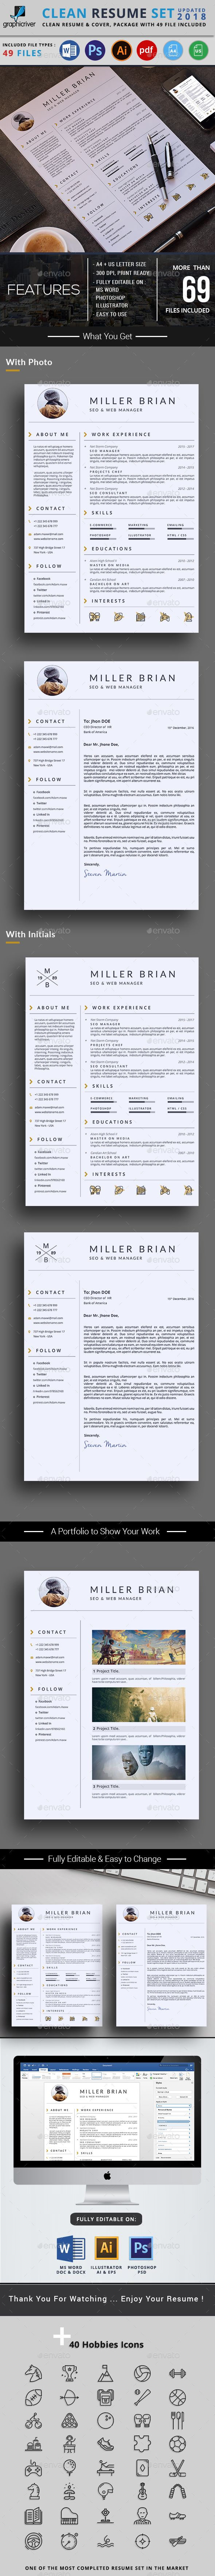 3823 best Resume Templates images on Pinterest | Resume templates ...